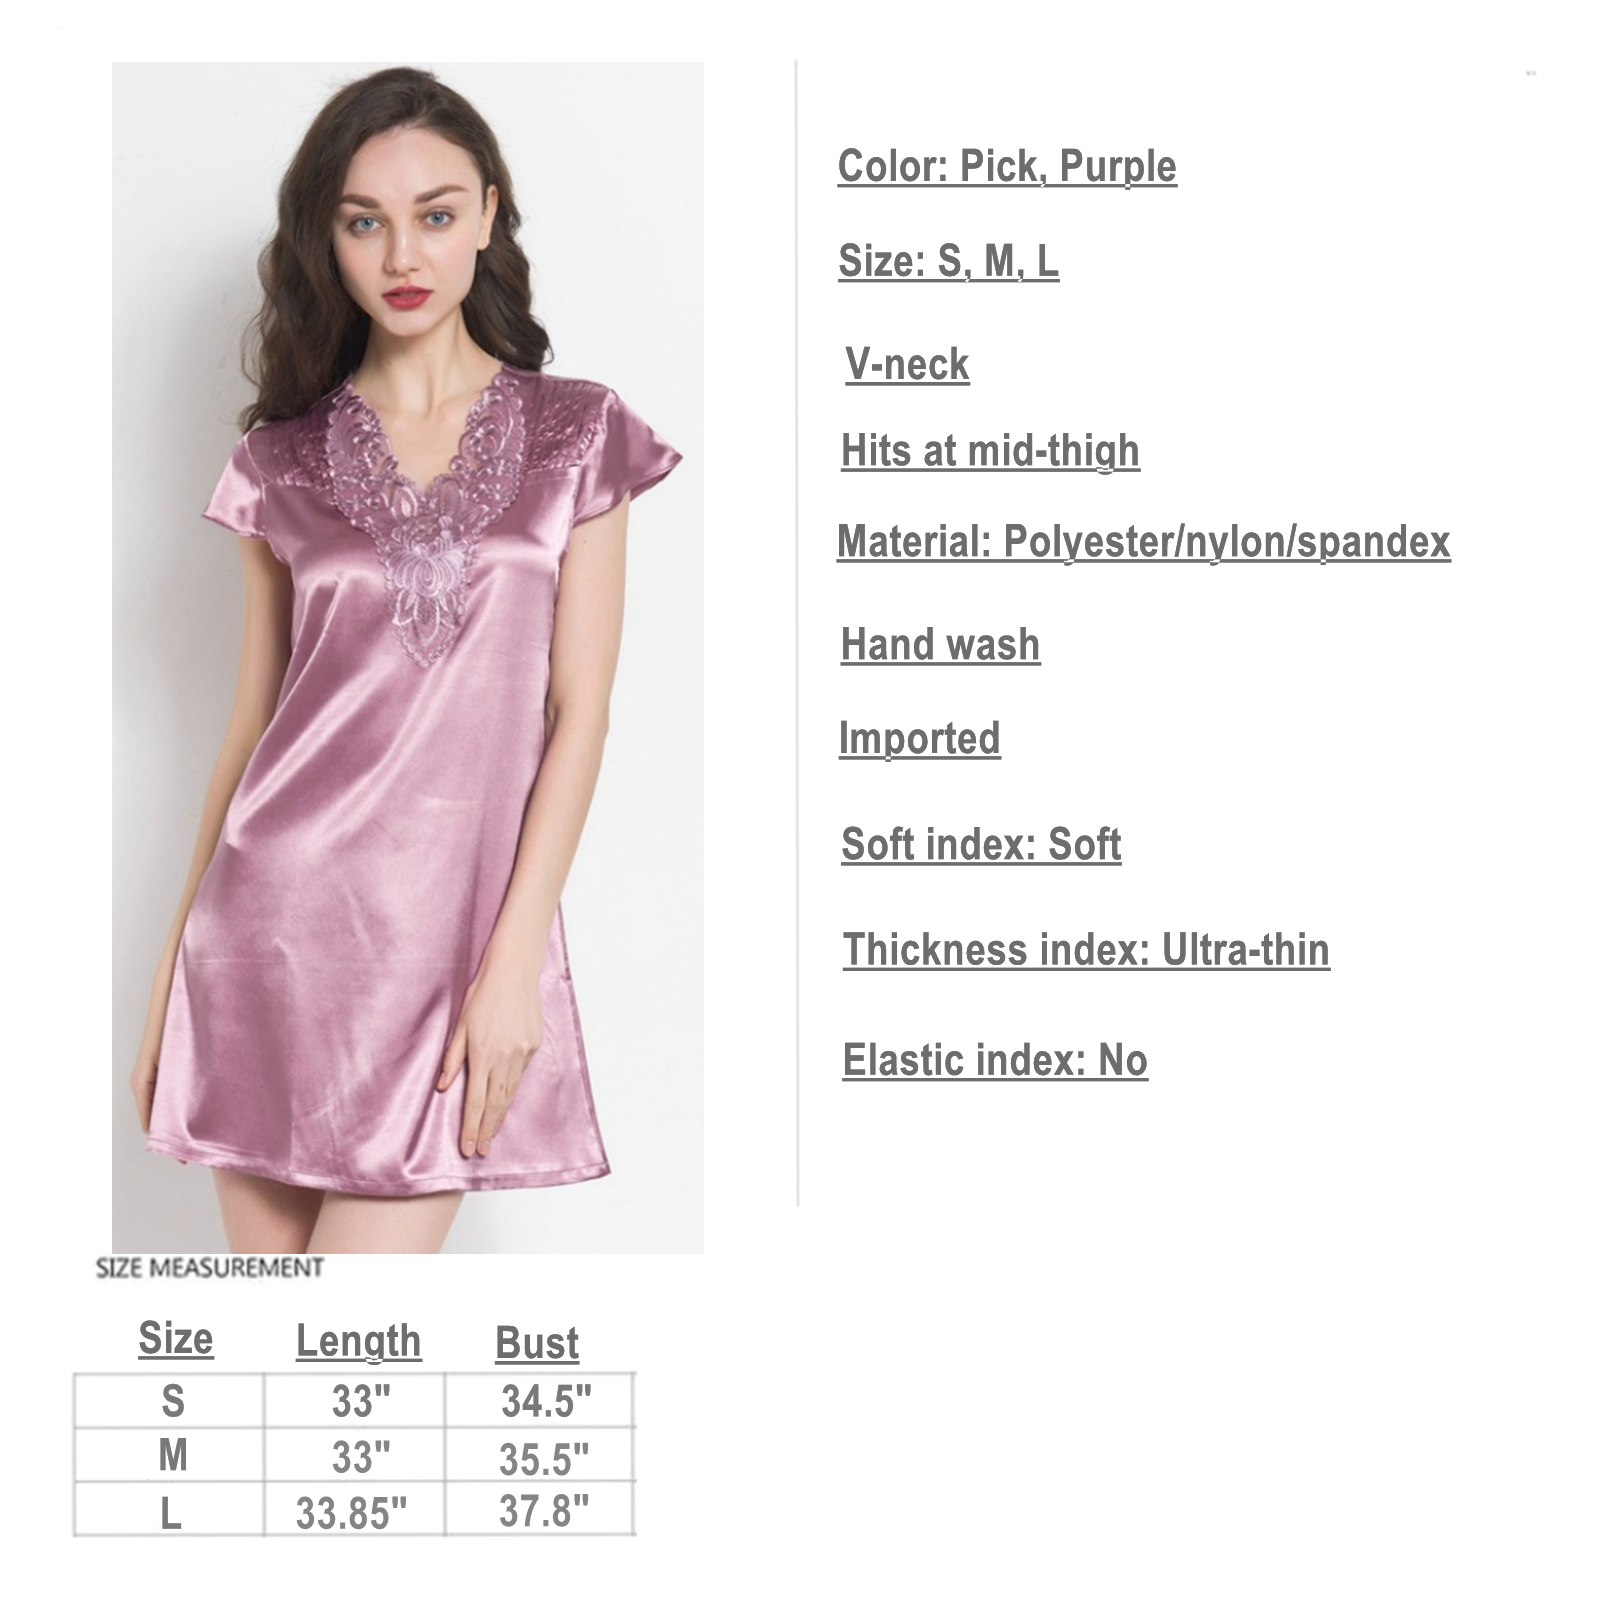 95a398ea61 Women Satin Sleepwear Dress V-Neck Short Sleeve Nightgown Lace Sleep  Lingerie 2 2 of 2 See More